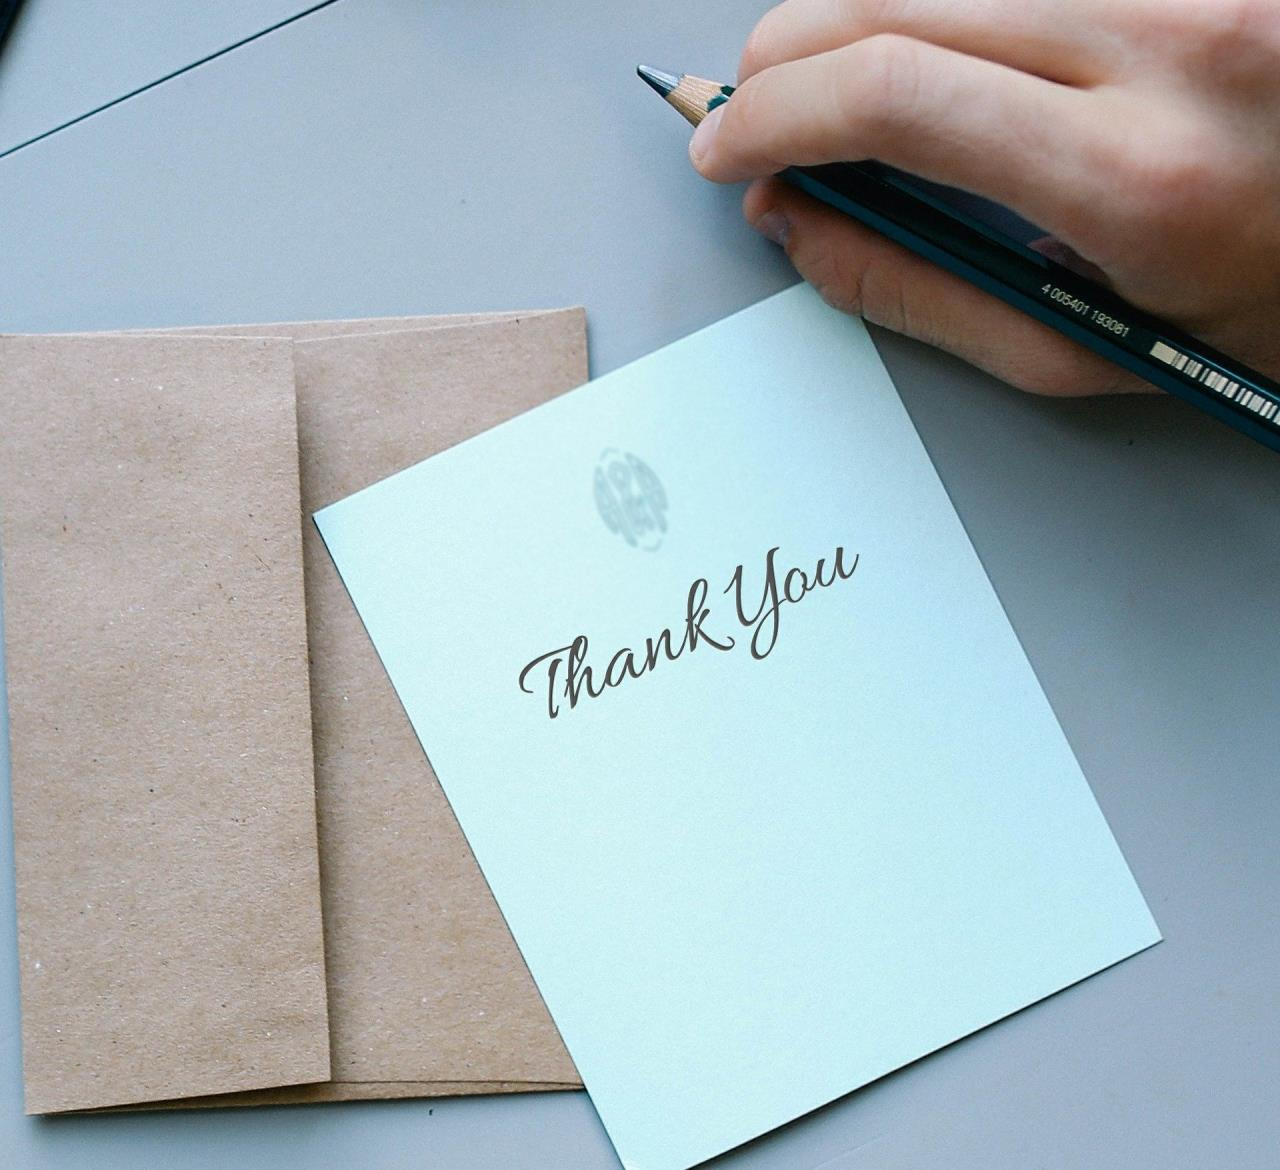 Thank You on Card with Envelope and Hand Holding Pen